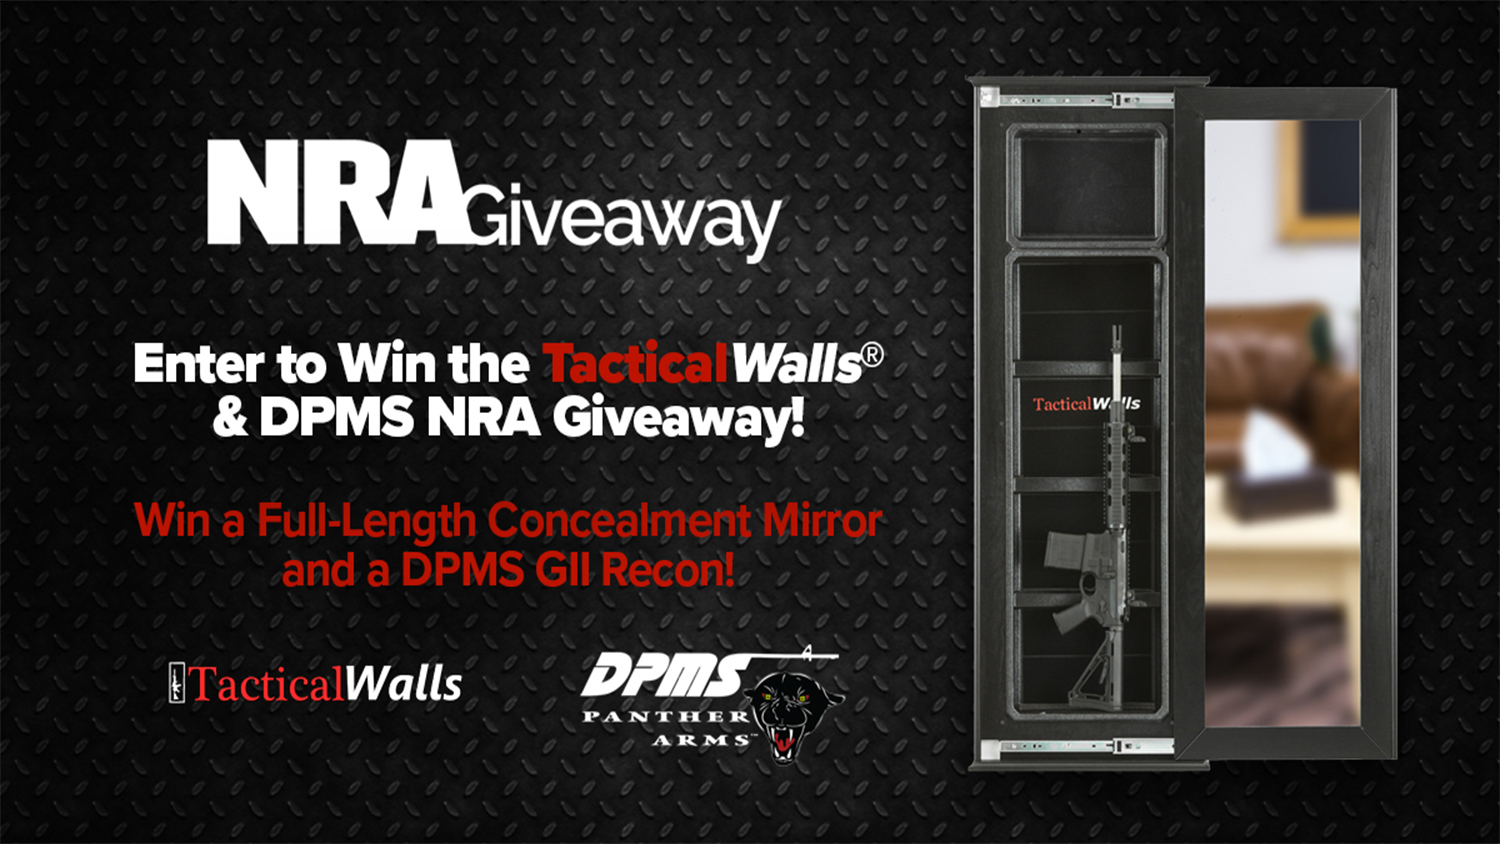 NRA Giveaway